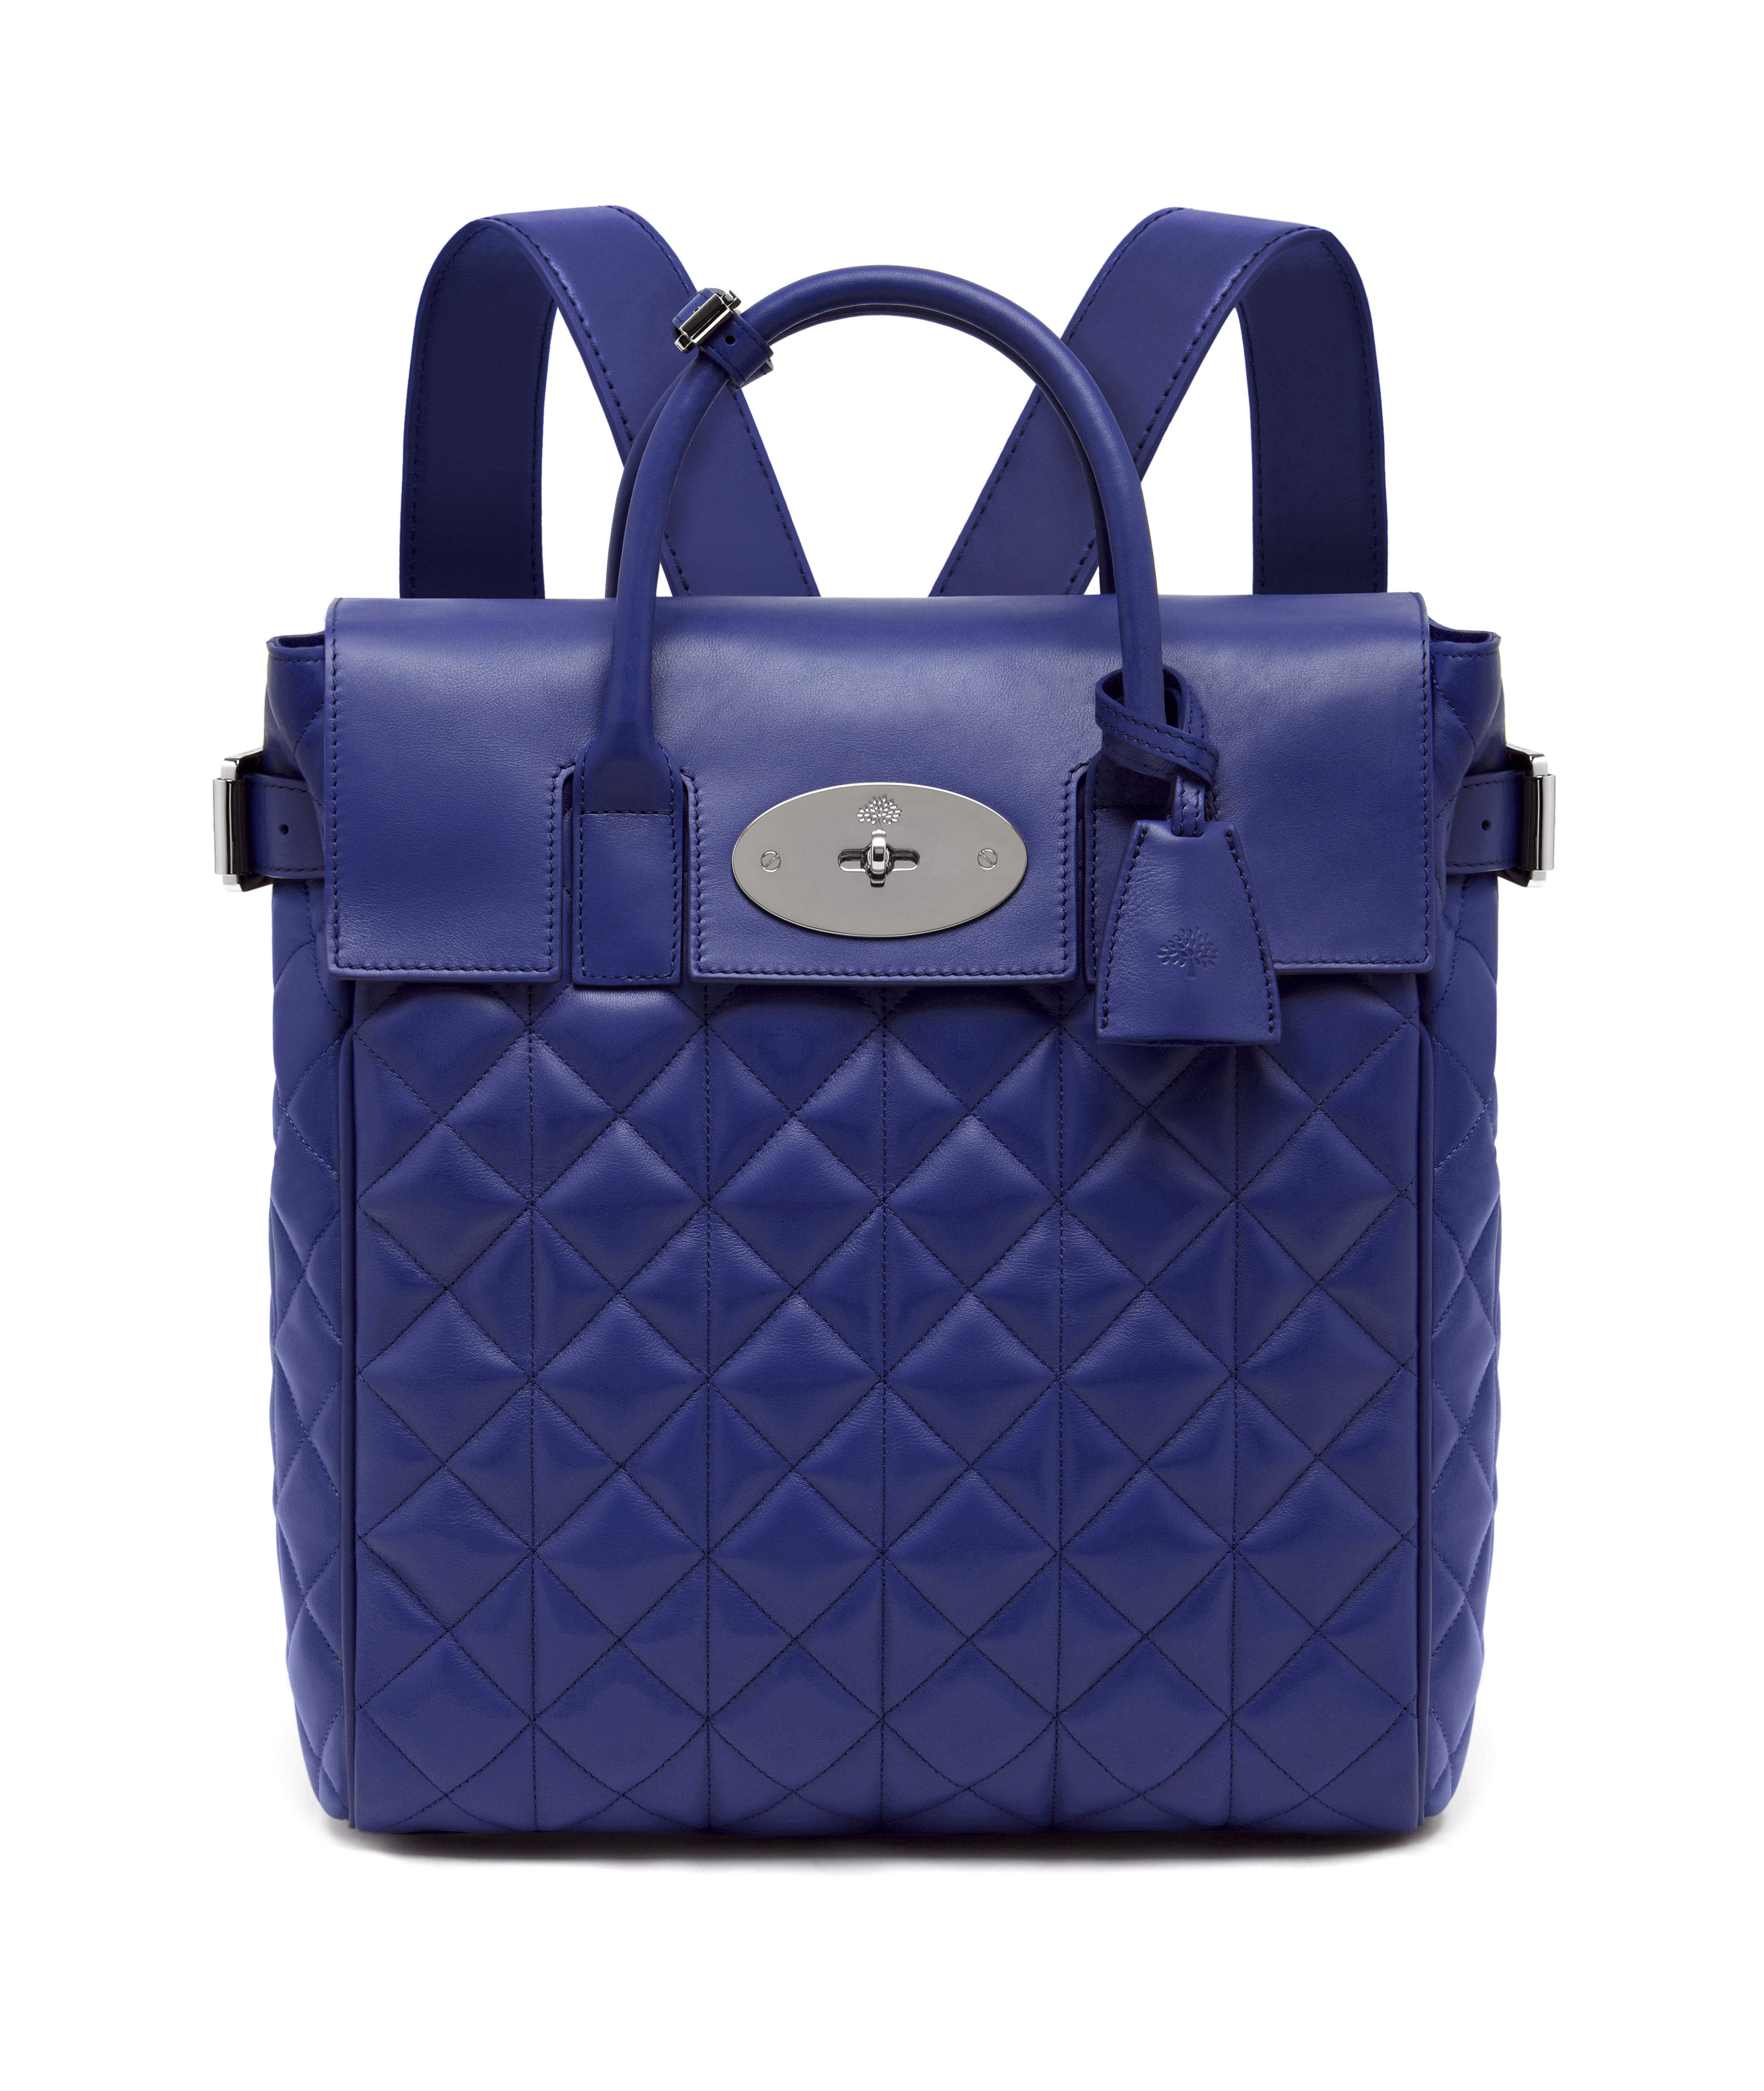 Large Cara Delevingne Bag in Indigo Quilted Nappa